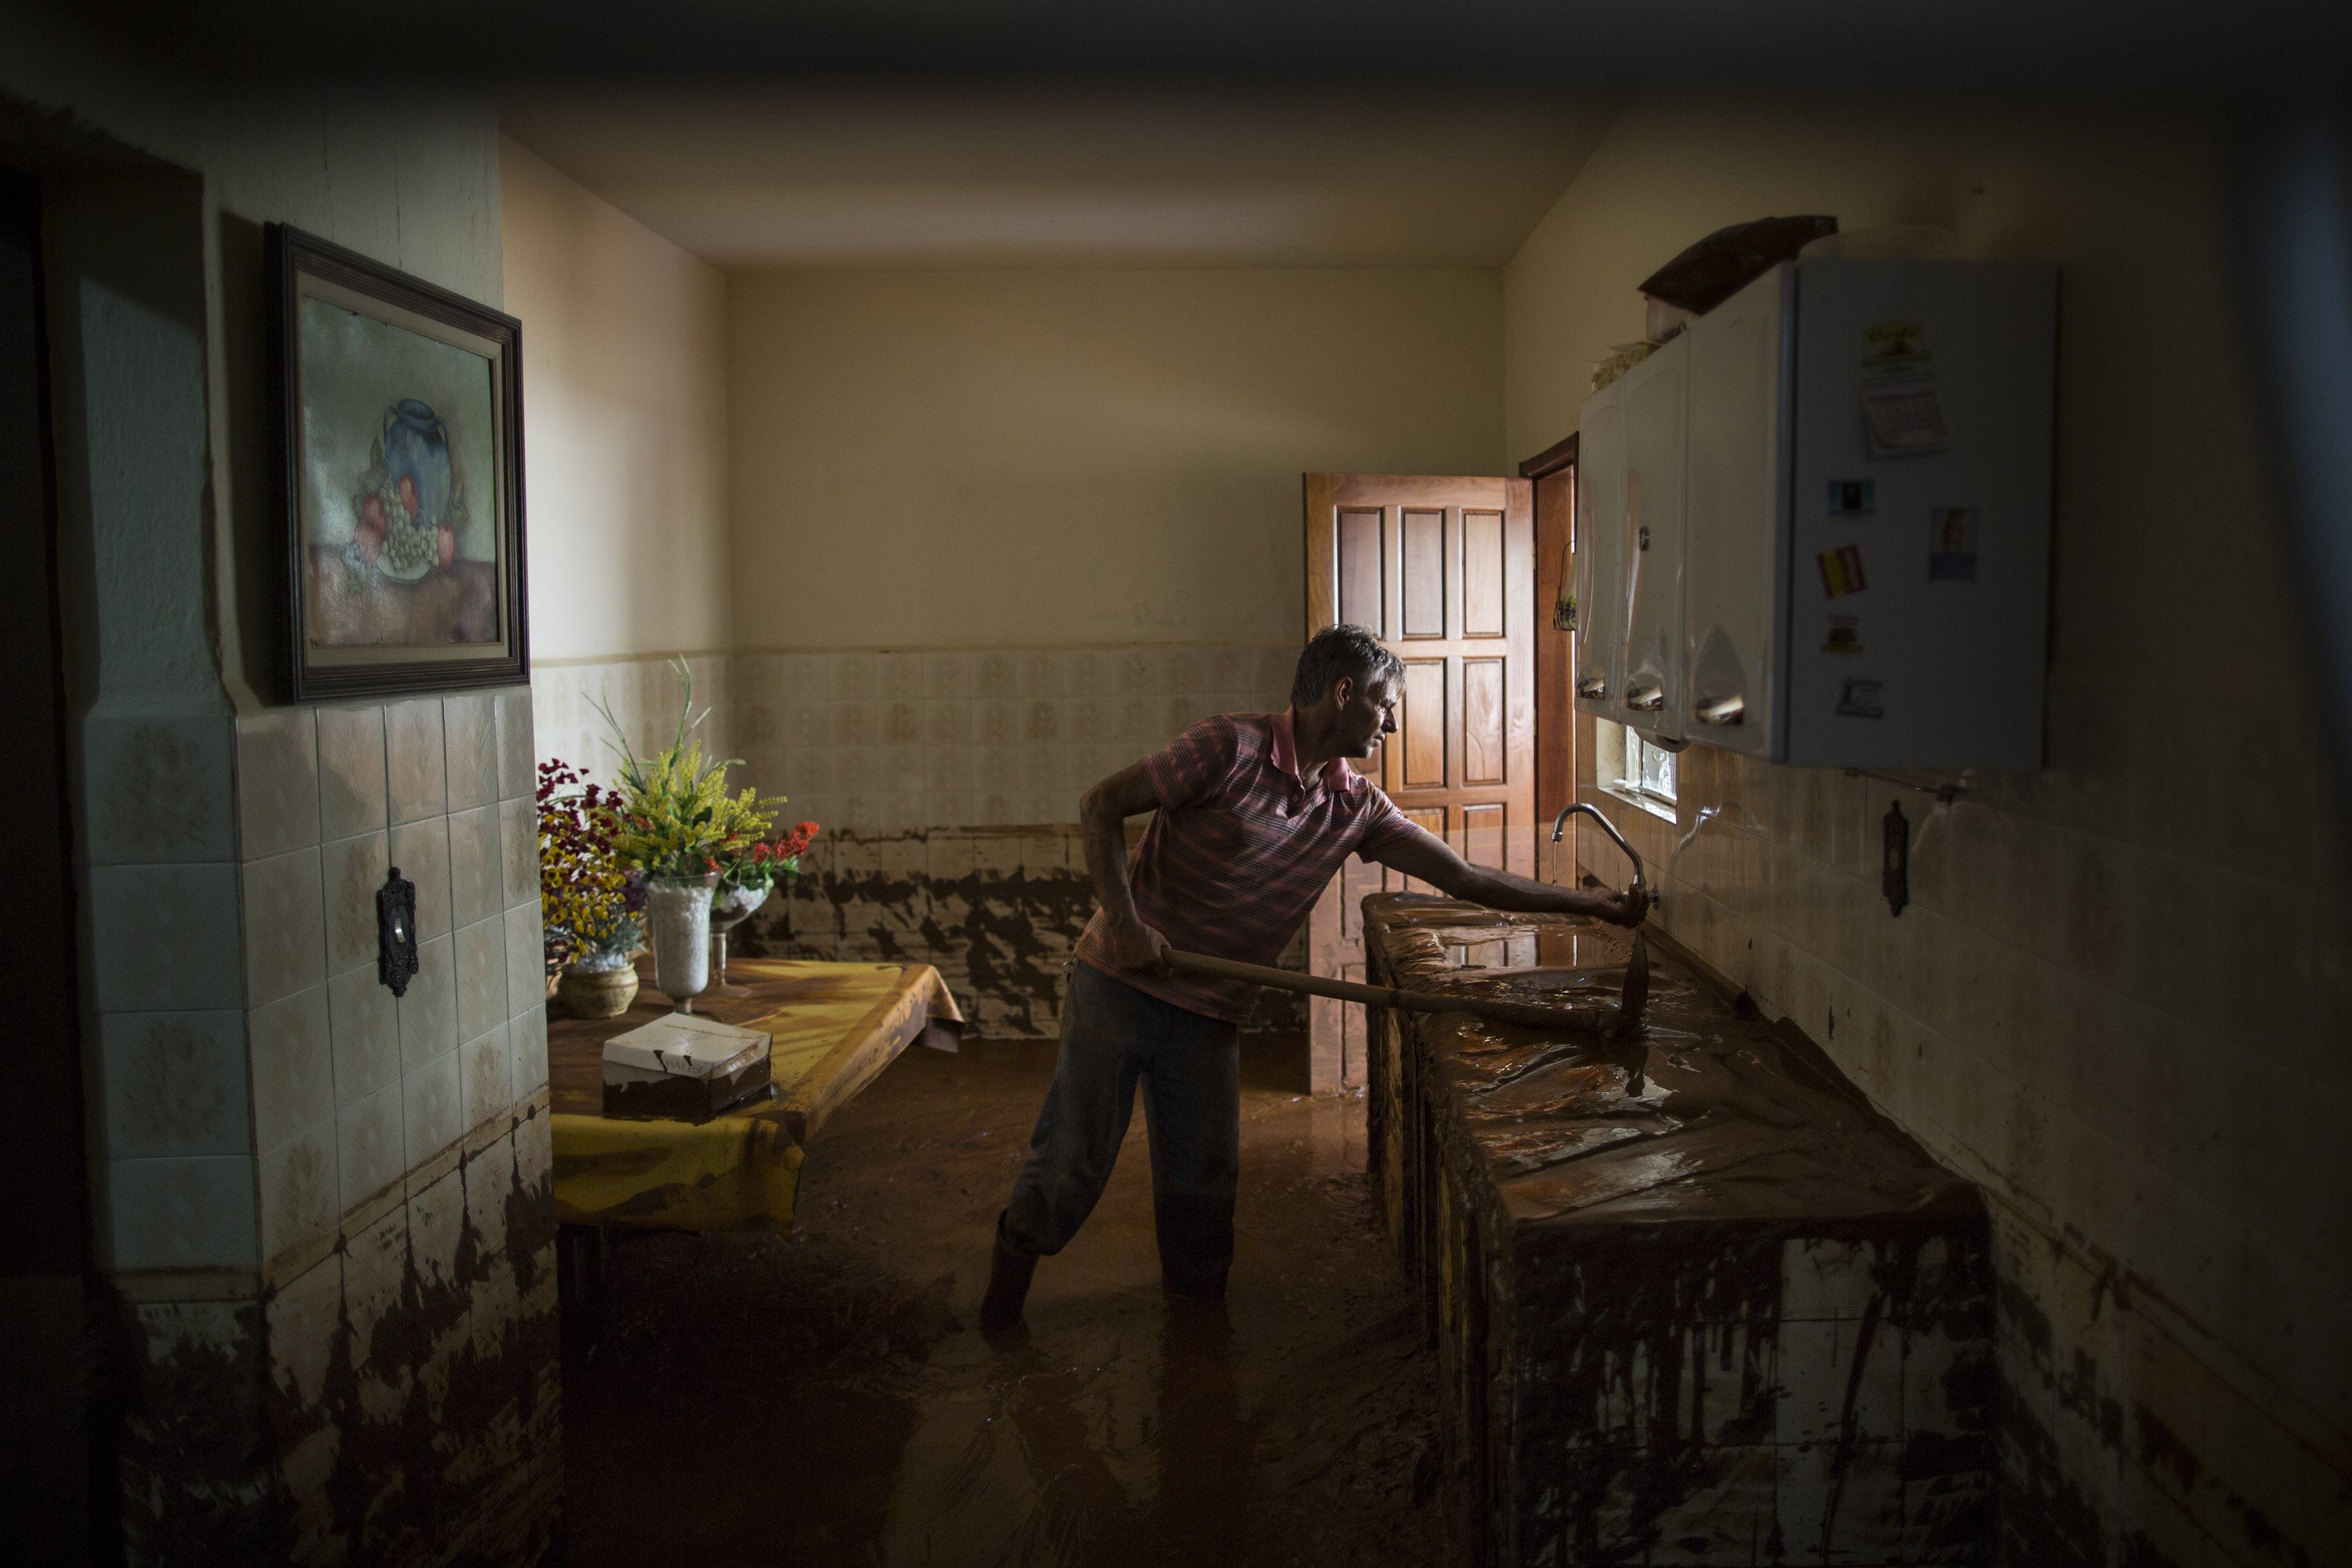 Antonio Carlos Carneiro removes mud from his damaged home in Barra Longa after a dam burst in Minas Gerais state, Brazil on Nov. 7, 2015.